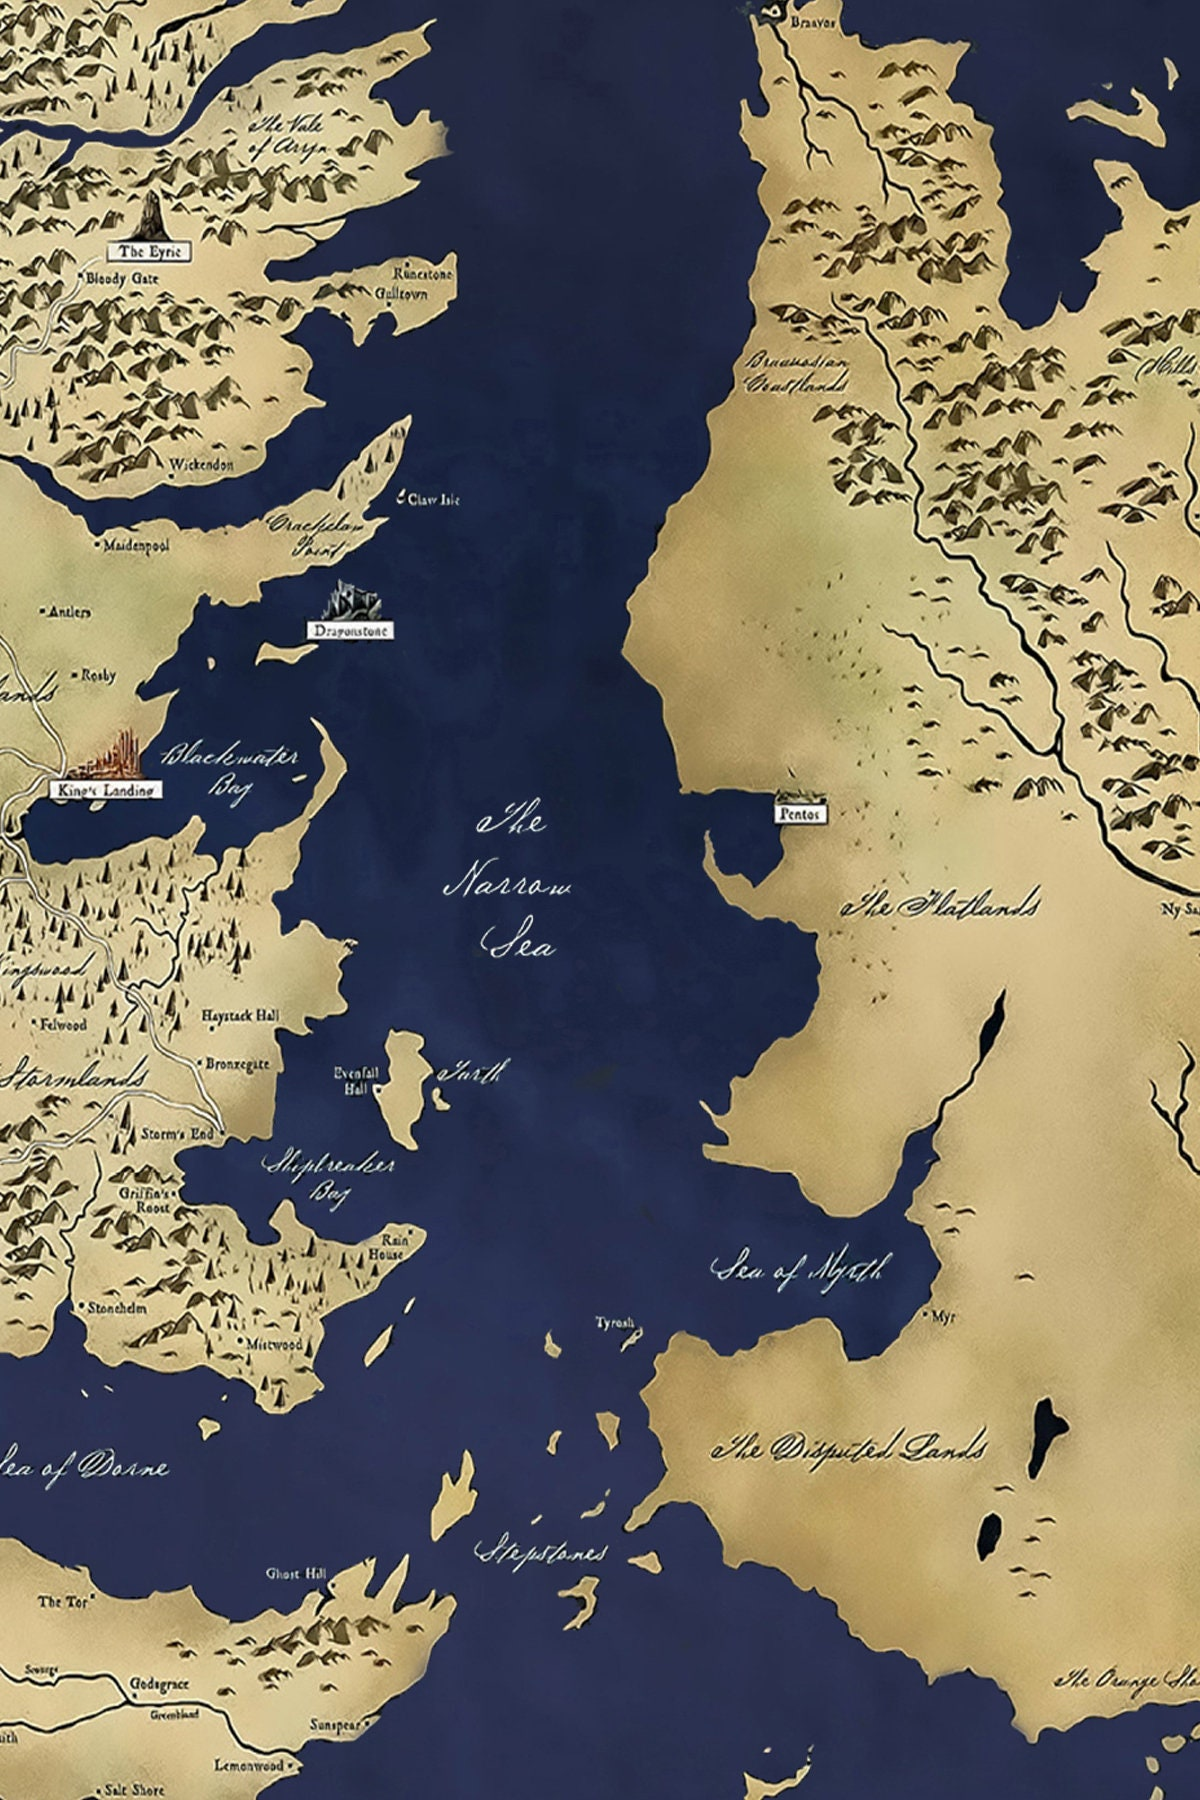 Game of Thrones Map, Westeros Map, Winterfell Map, GOT Map ... Game Of Thrones Map High Res on tamriel map high res, game of thrones artwork, game of thrones screensaver, westeros map high res, united states map high res, game of thrones ice wall prop, game of thrones house sigils, game of thrones art, pillars of eternity map high res, the crew map high res,